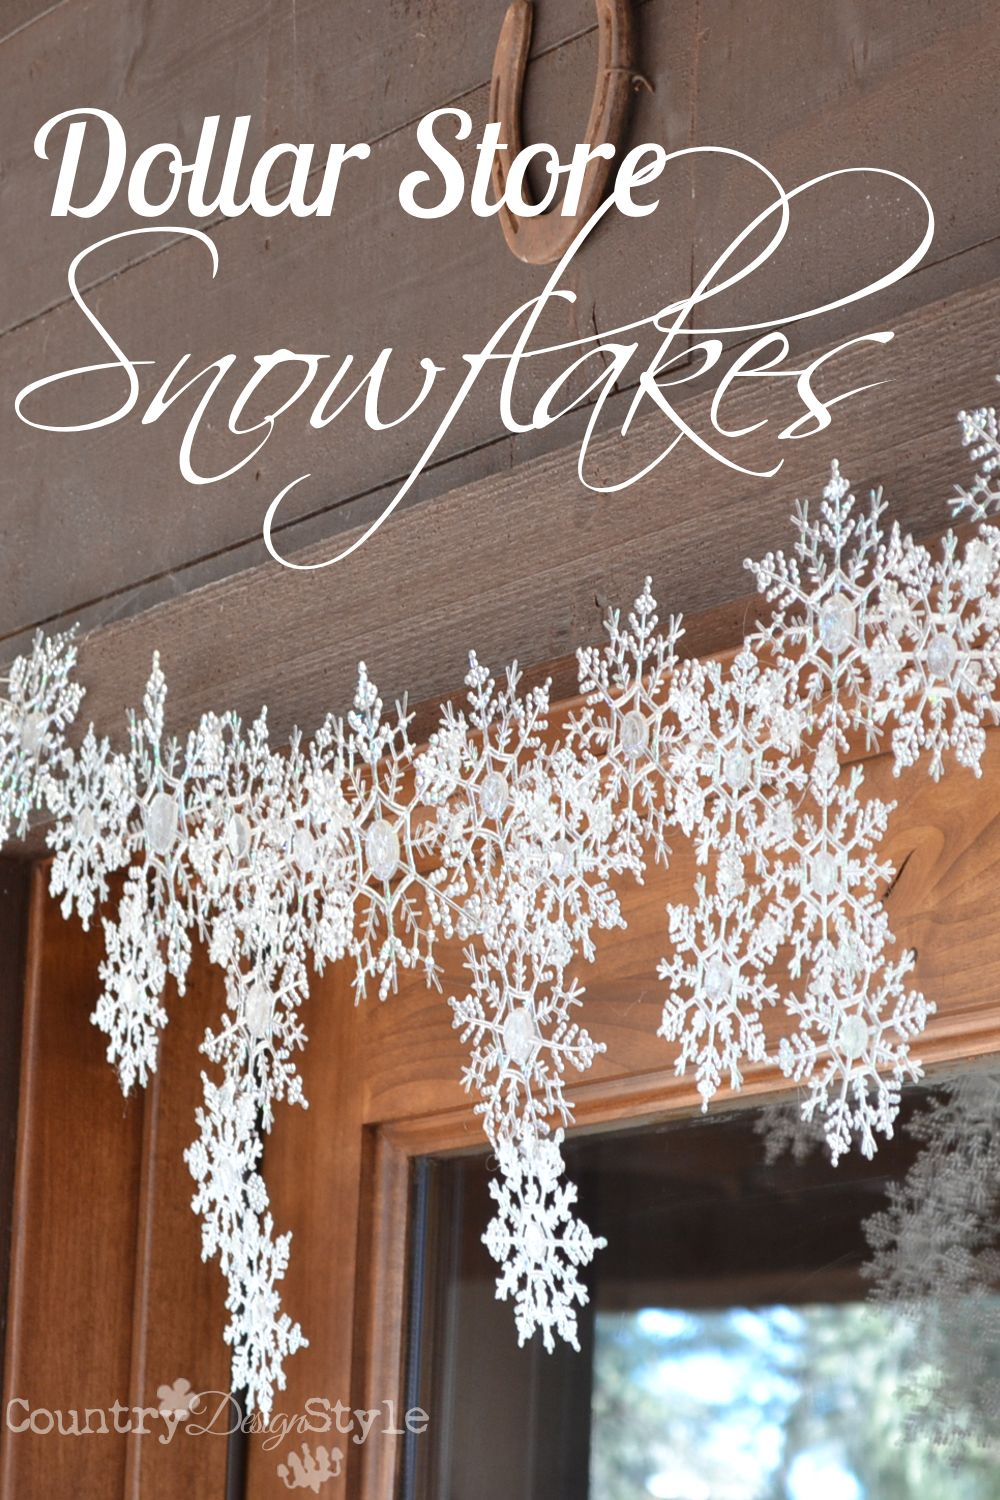 Dollar store snowflakes glue guns dollar stores and for Decoration hole